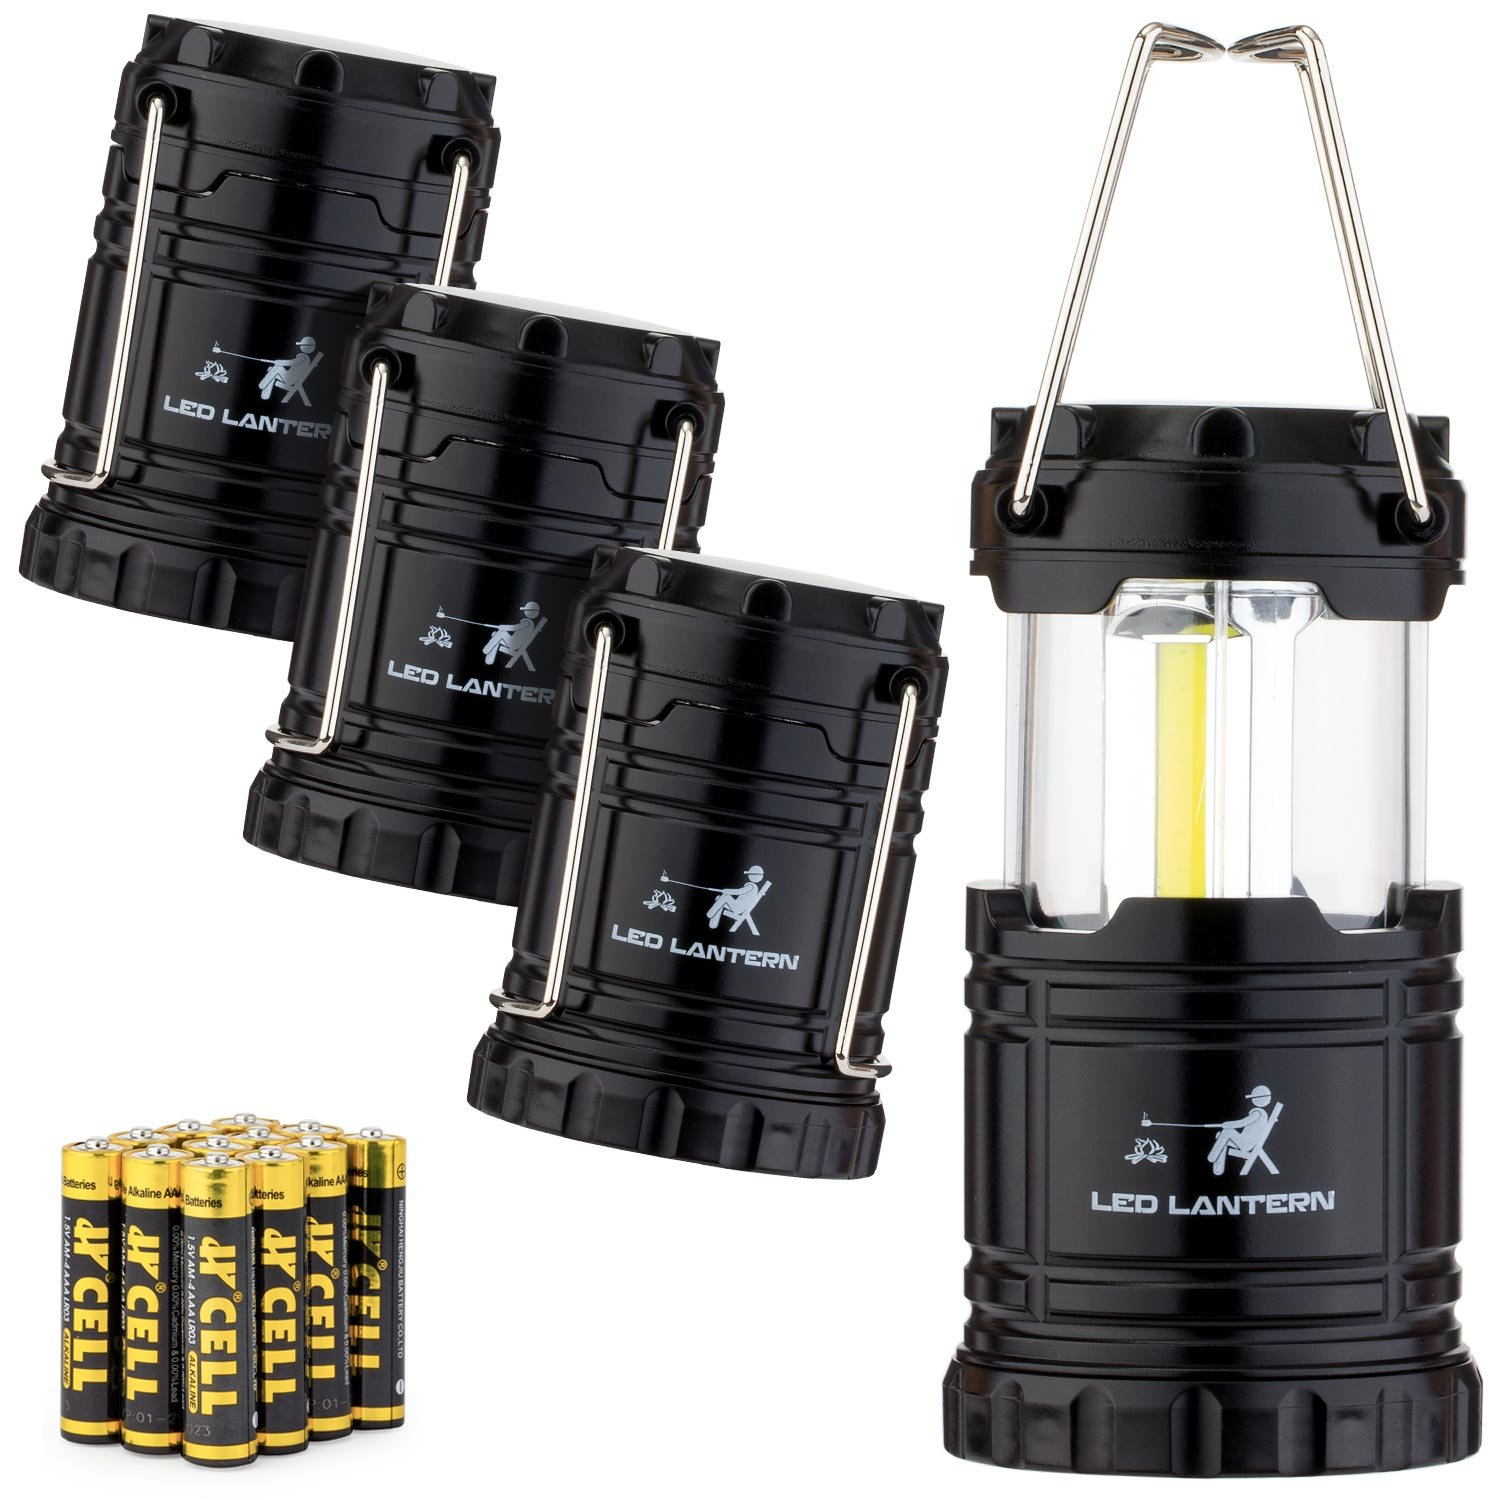 MalloMe LED Camping Lantern Flashlights 4 Pack – Super Bright – 350 Lumen Portable Outdoor Lights with 12 AAA Batteries Black, Collapsible